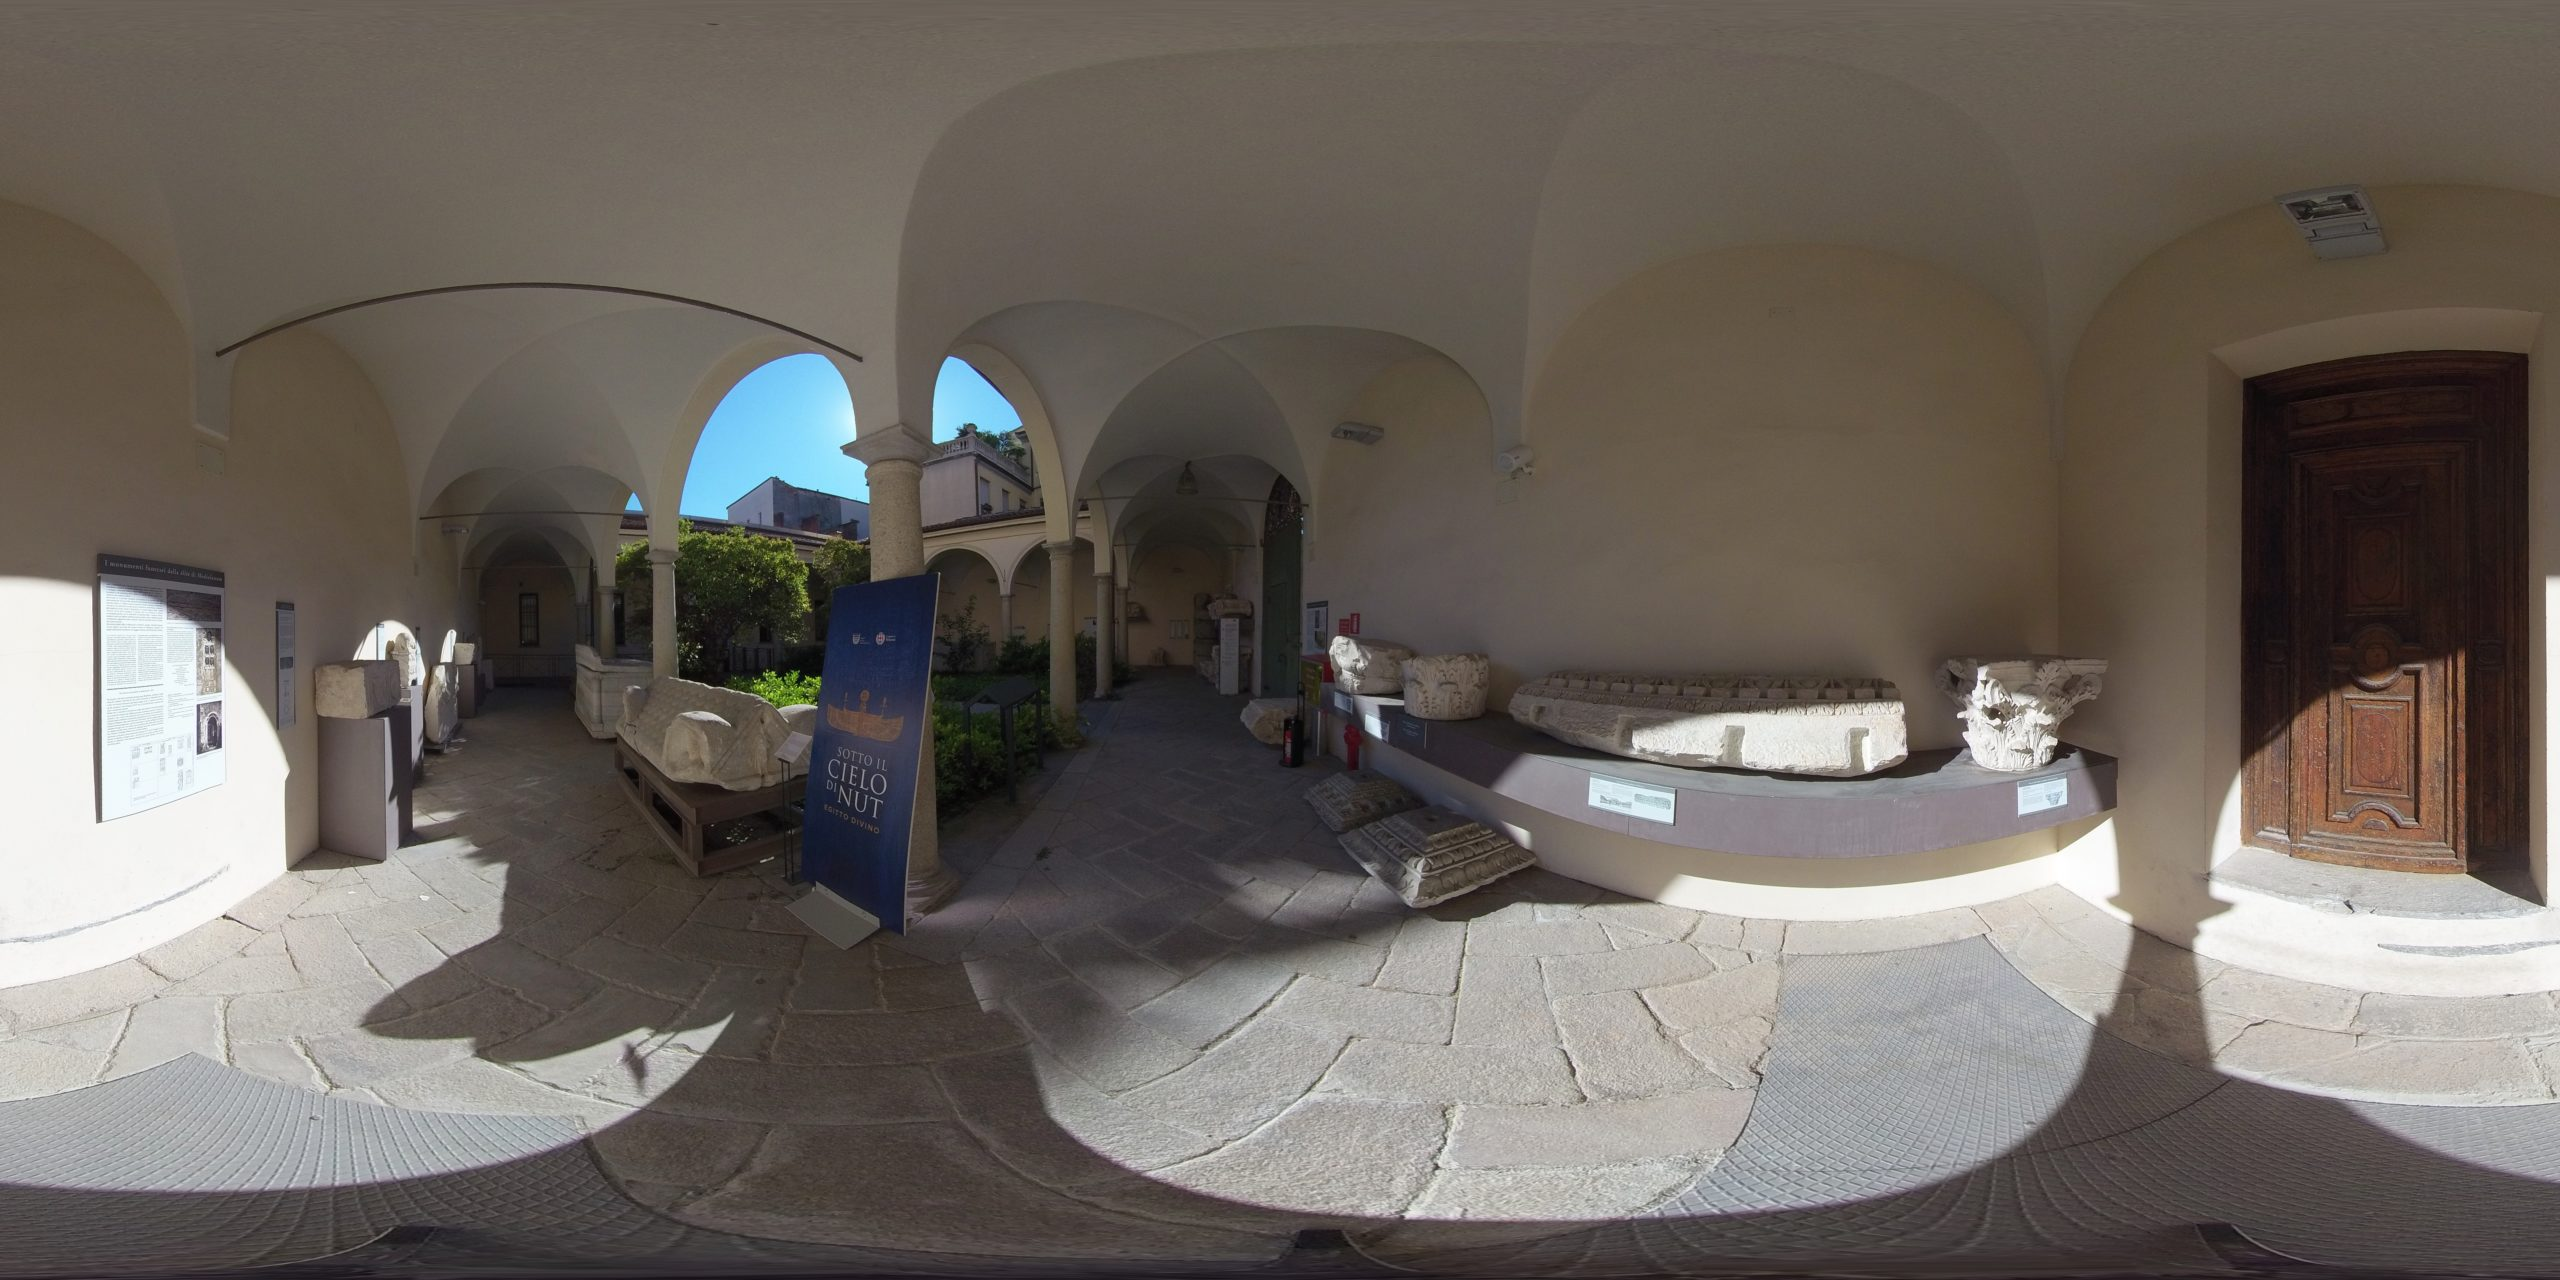 360 degree image archaeological museum